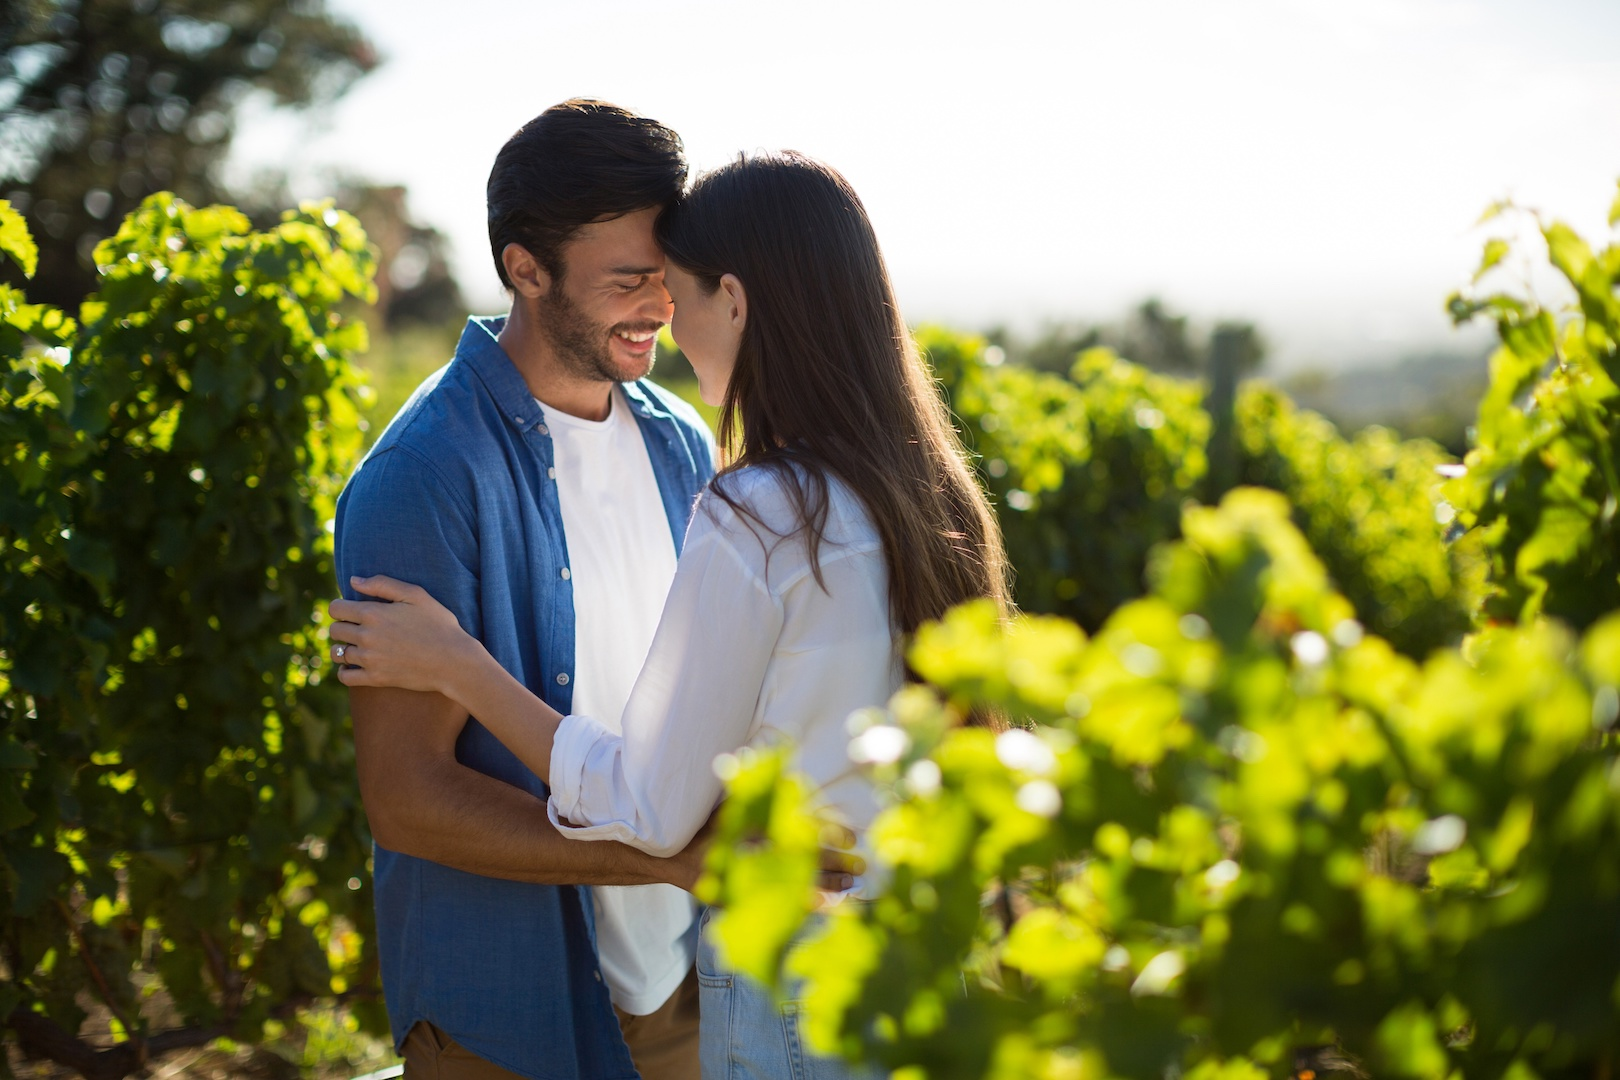 Romantic Vineyard Creative Dates - AdobeStock_148866990